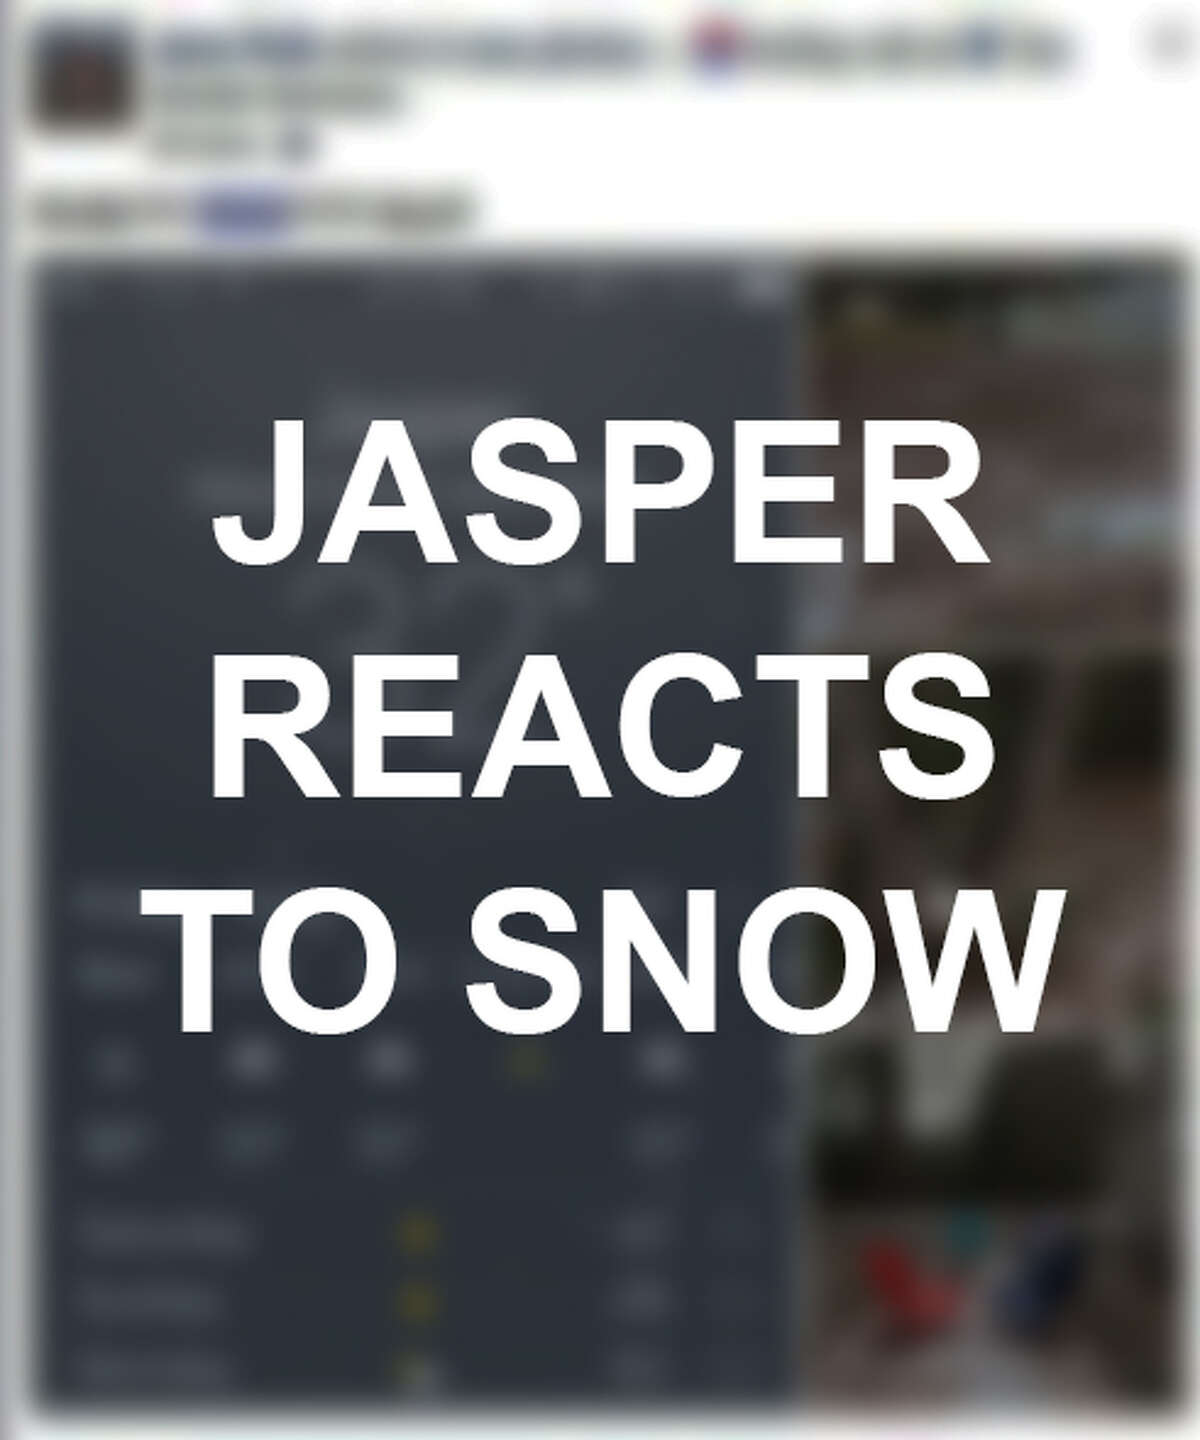 Jasper residents got a taste of some snowy weather on Friday. Scroll through the slideshow to see posts and pictures in reference to the rare weather.